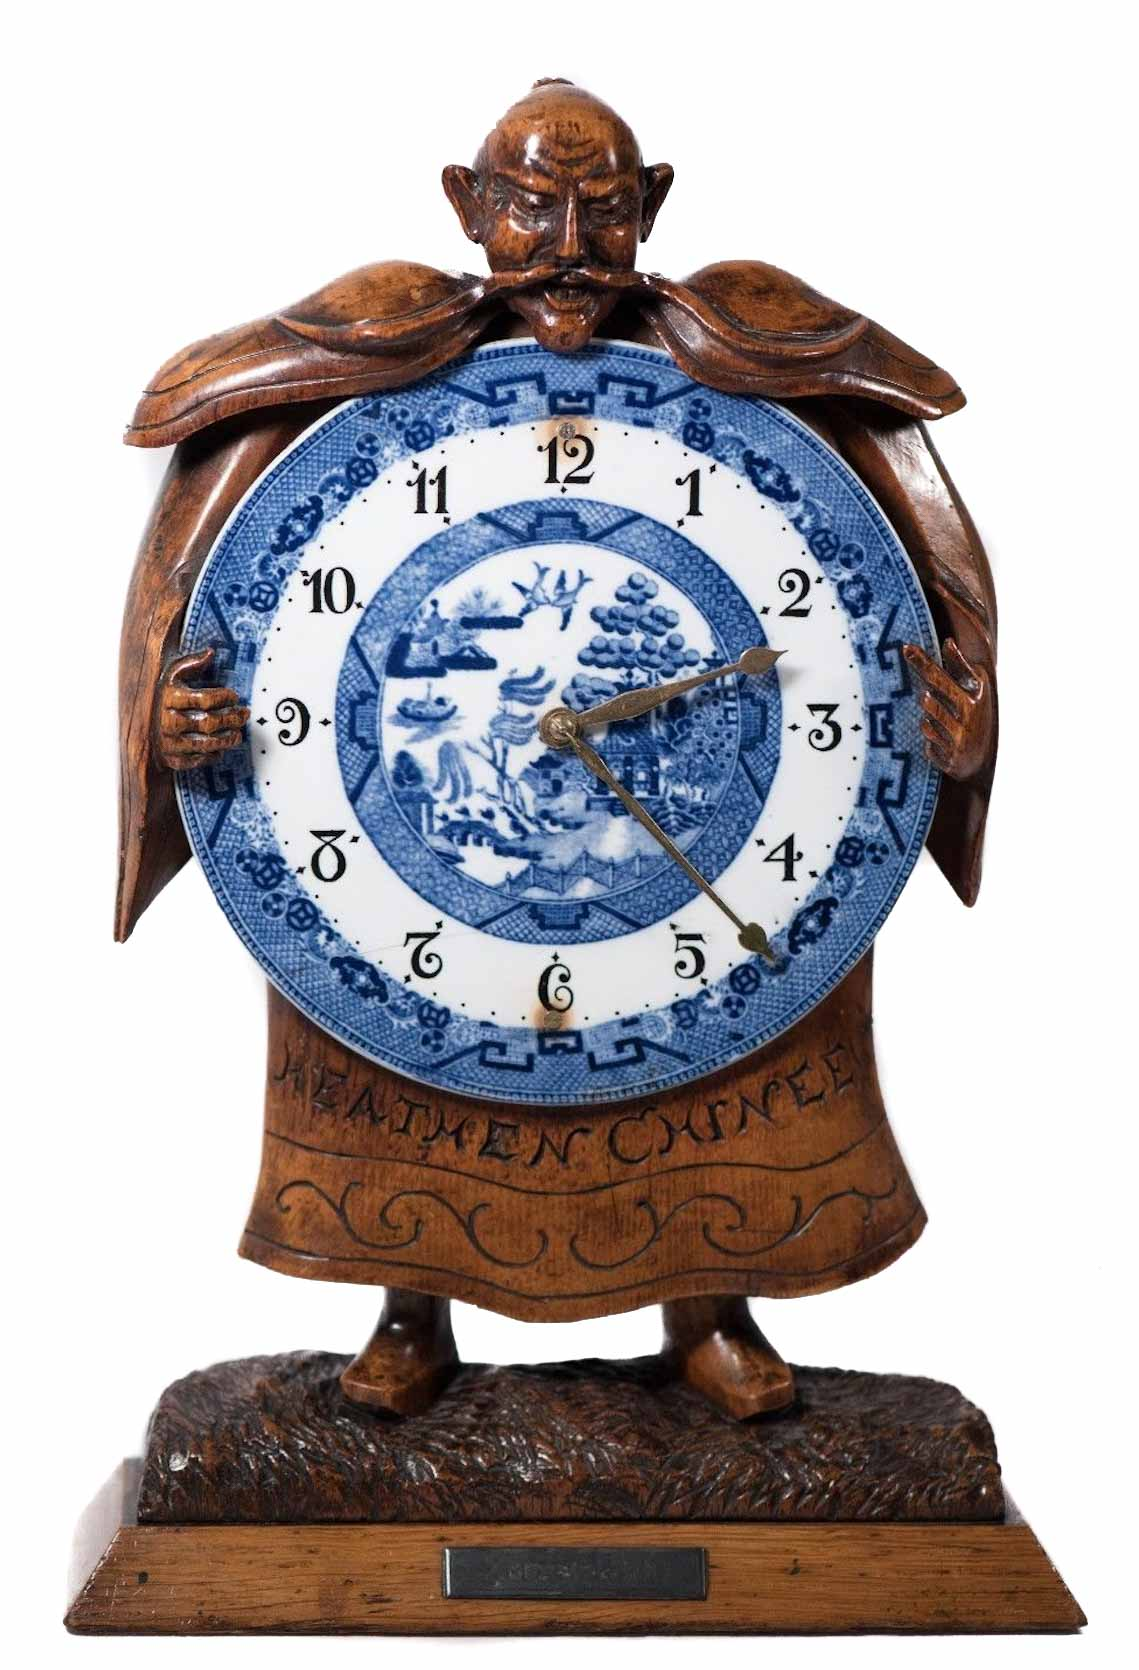 Fine Art Objects Collection - Click to view our current, one of a kind collection of Fine Art ObjectsFrom rare 19th century clocks to wood carvings from the turn of the 16th century, you never know what may show up!